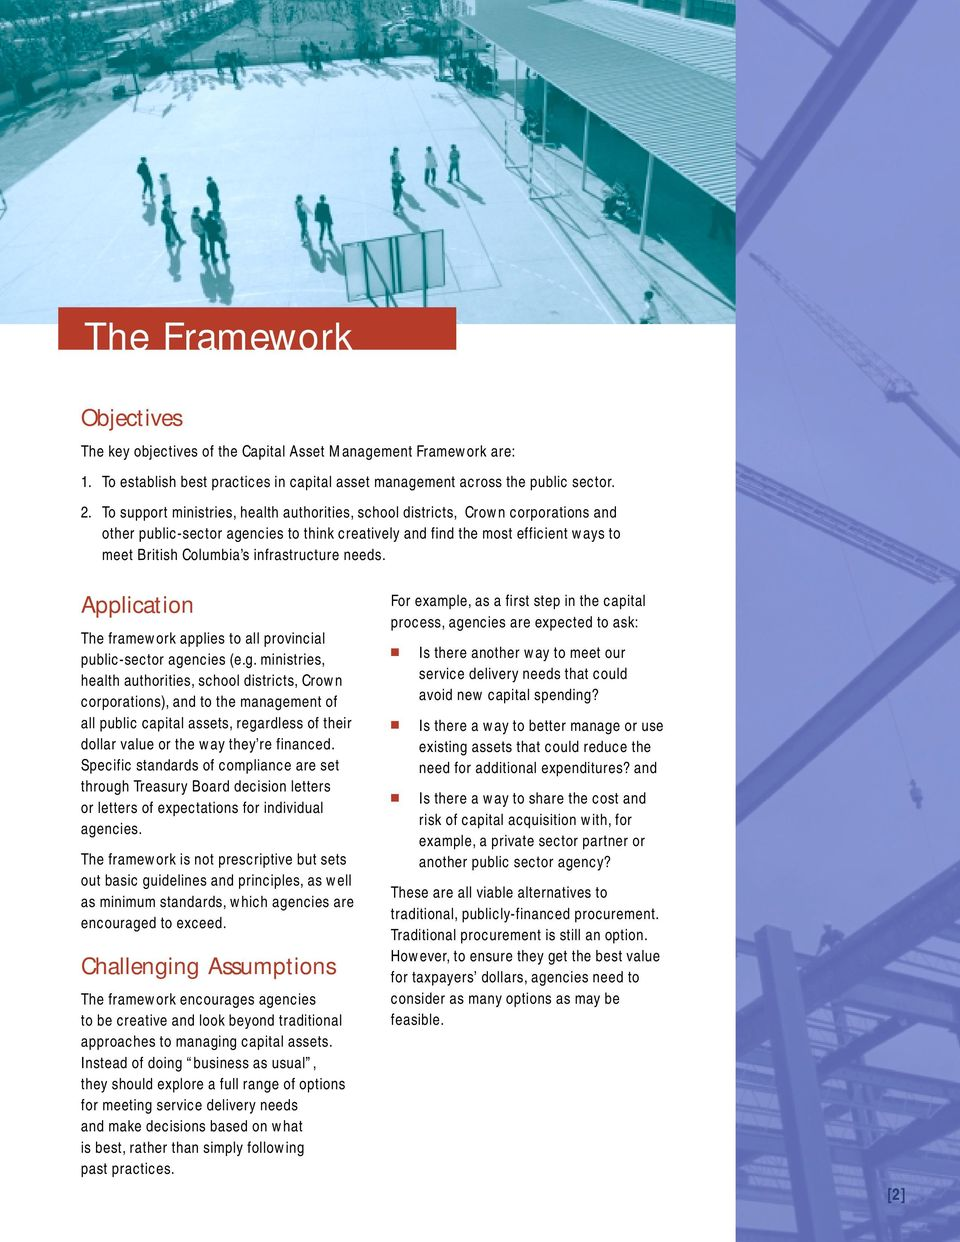 infrastructure needs. Application The framework applies to all provincial public-sector age